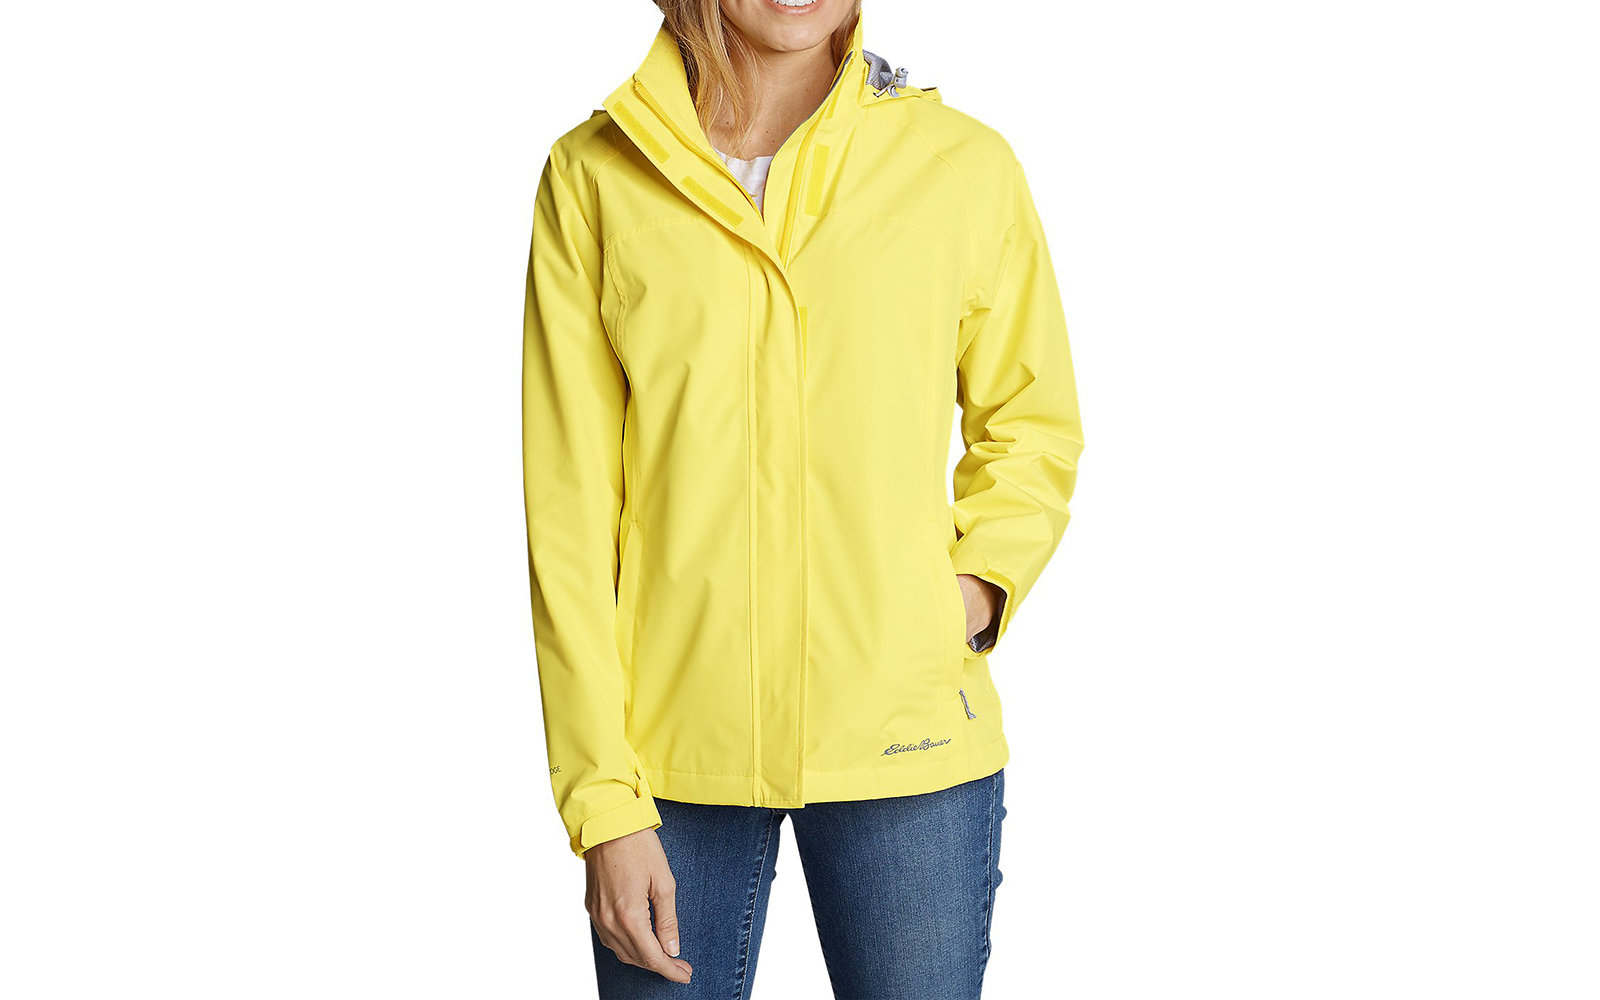 14 Best Women's Rain Jackets, According to Customers | Travel + Leisure